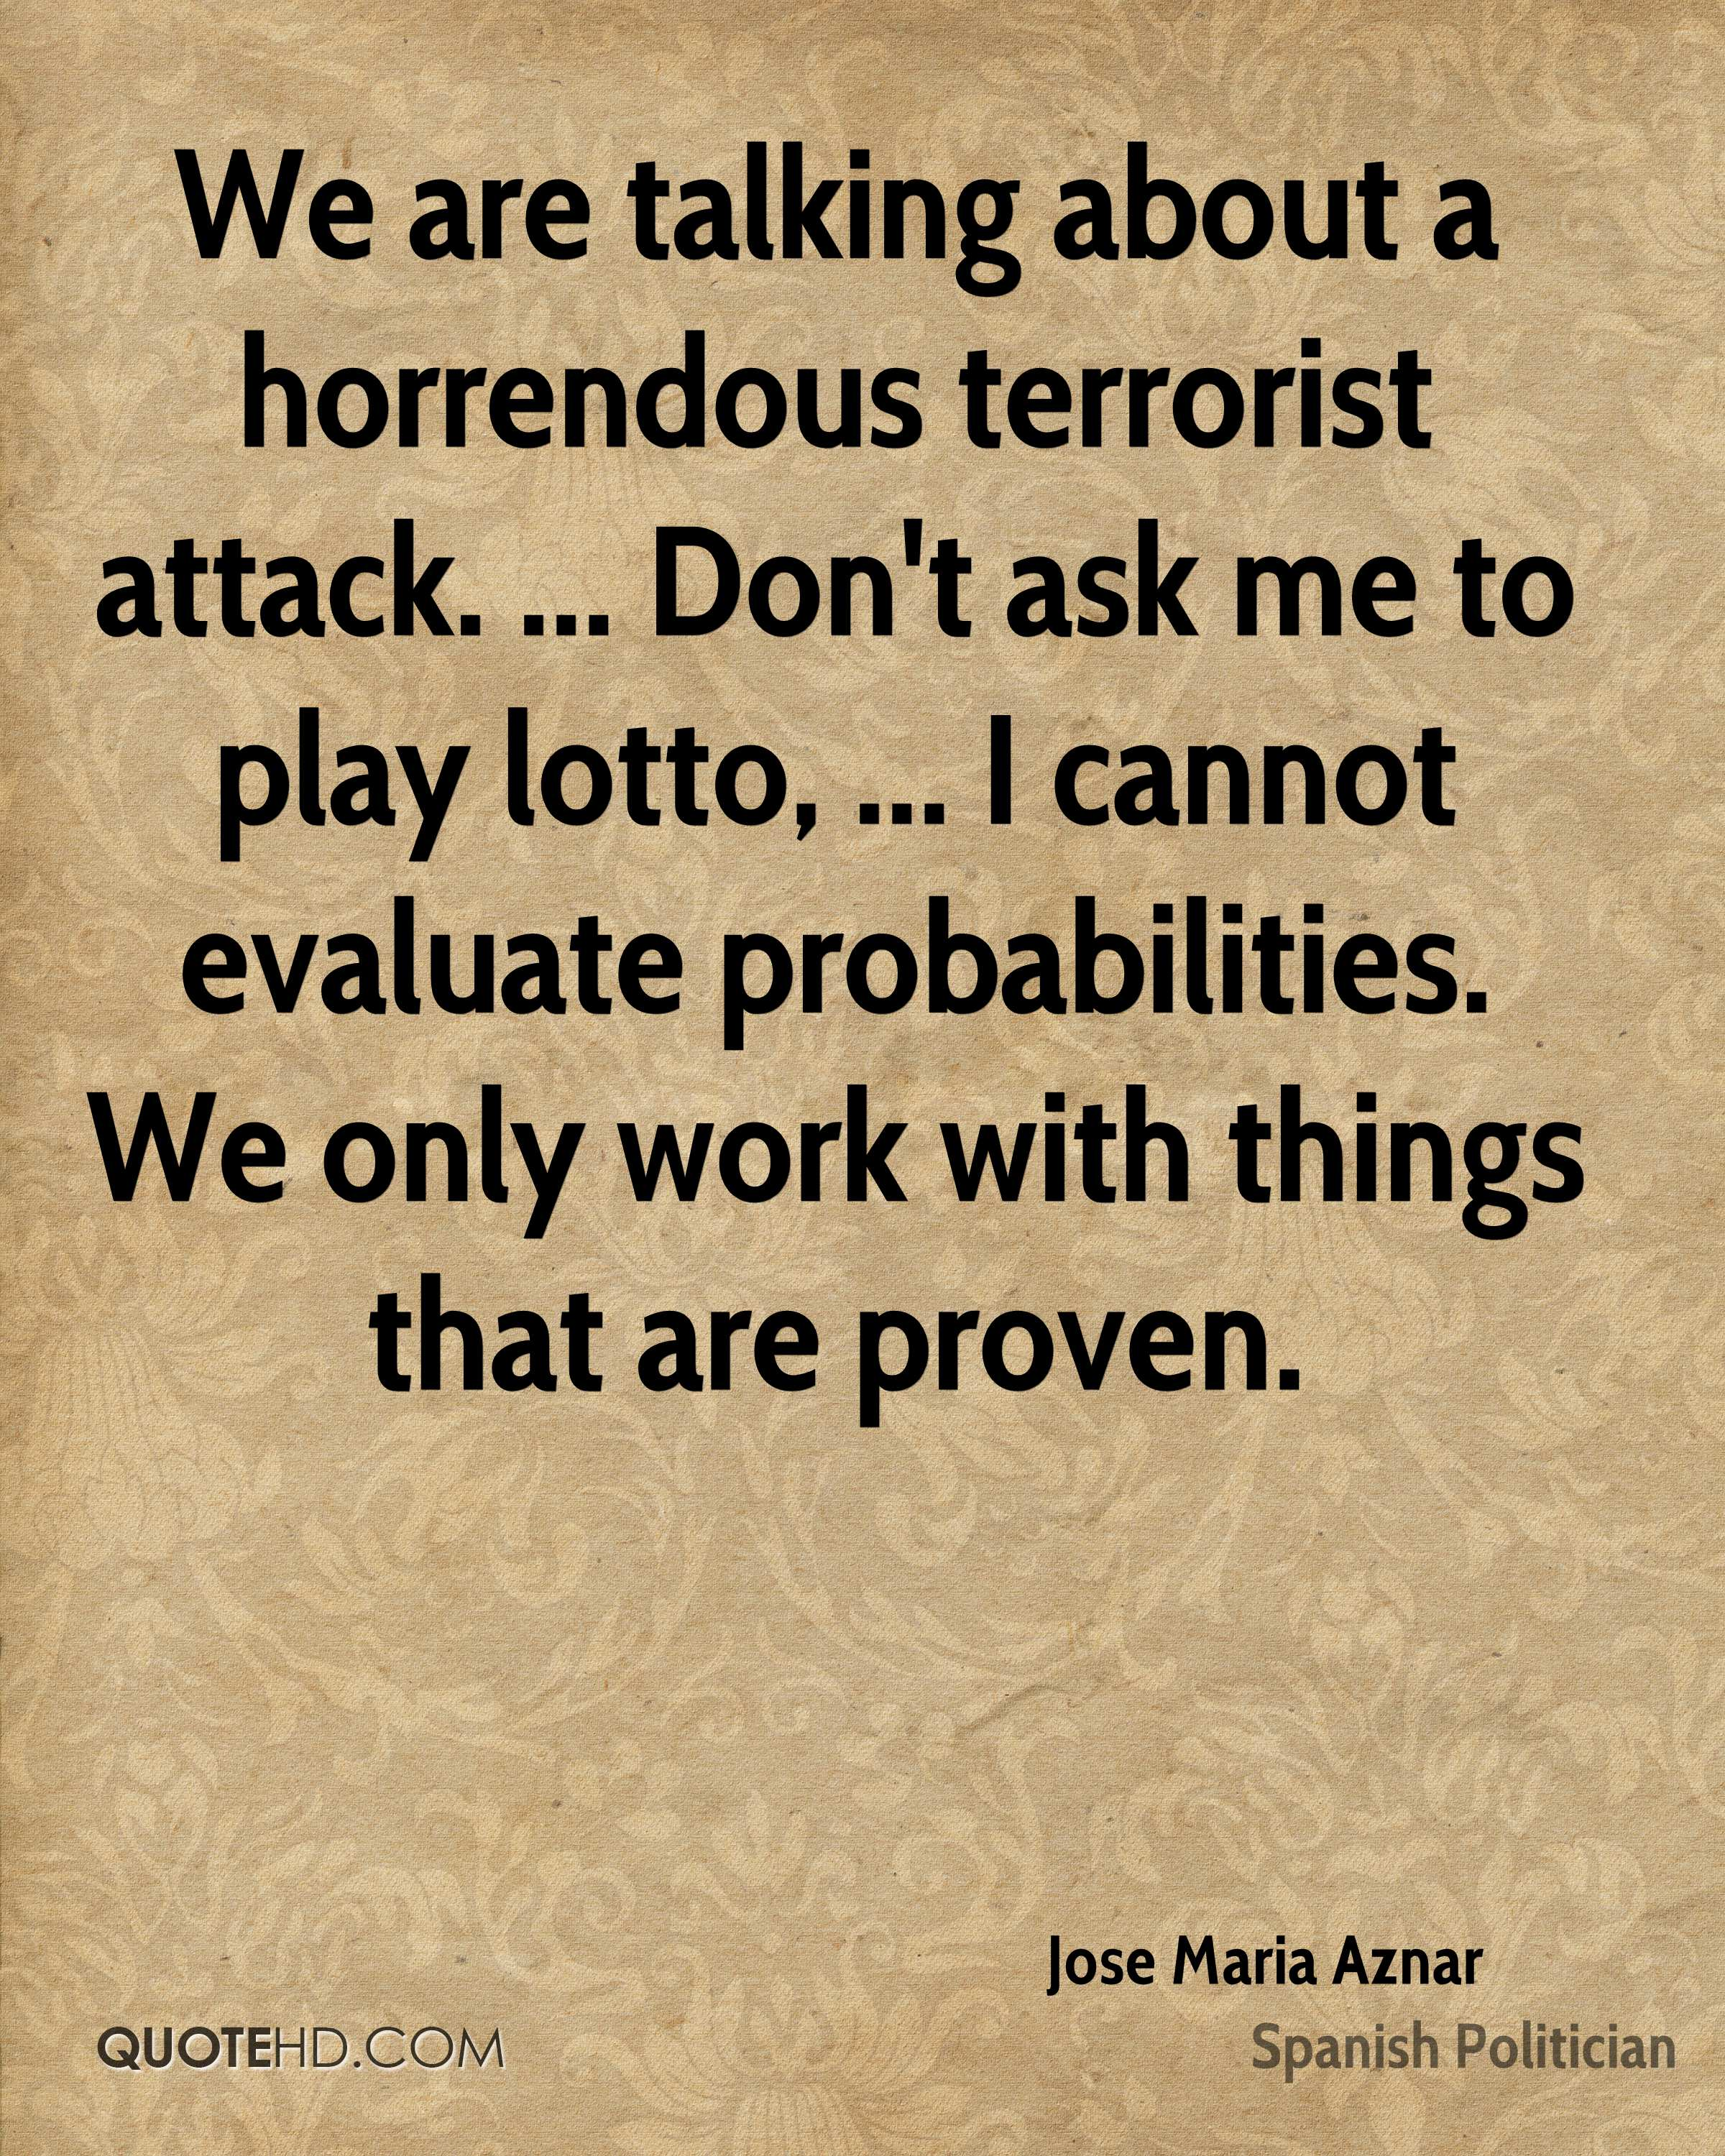 We are talking about a horrendous terrorist attack. ... Don't ask me to play lotto, ... I cannot evaluate probabilities. We only work with things that are proven.